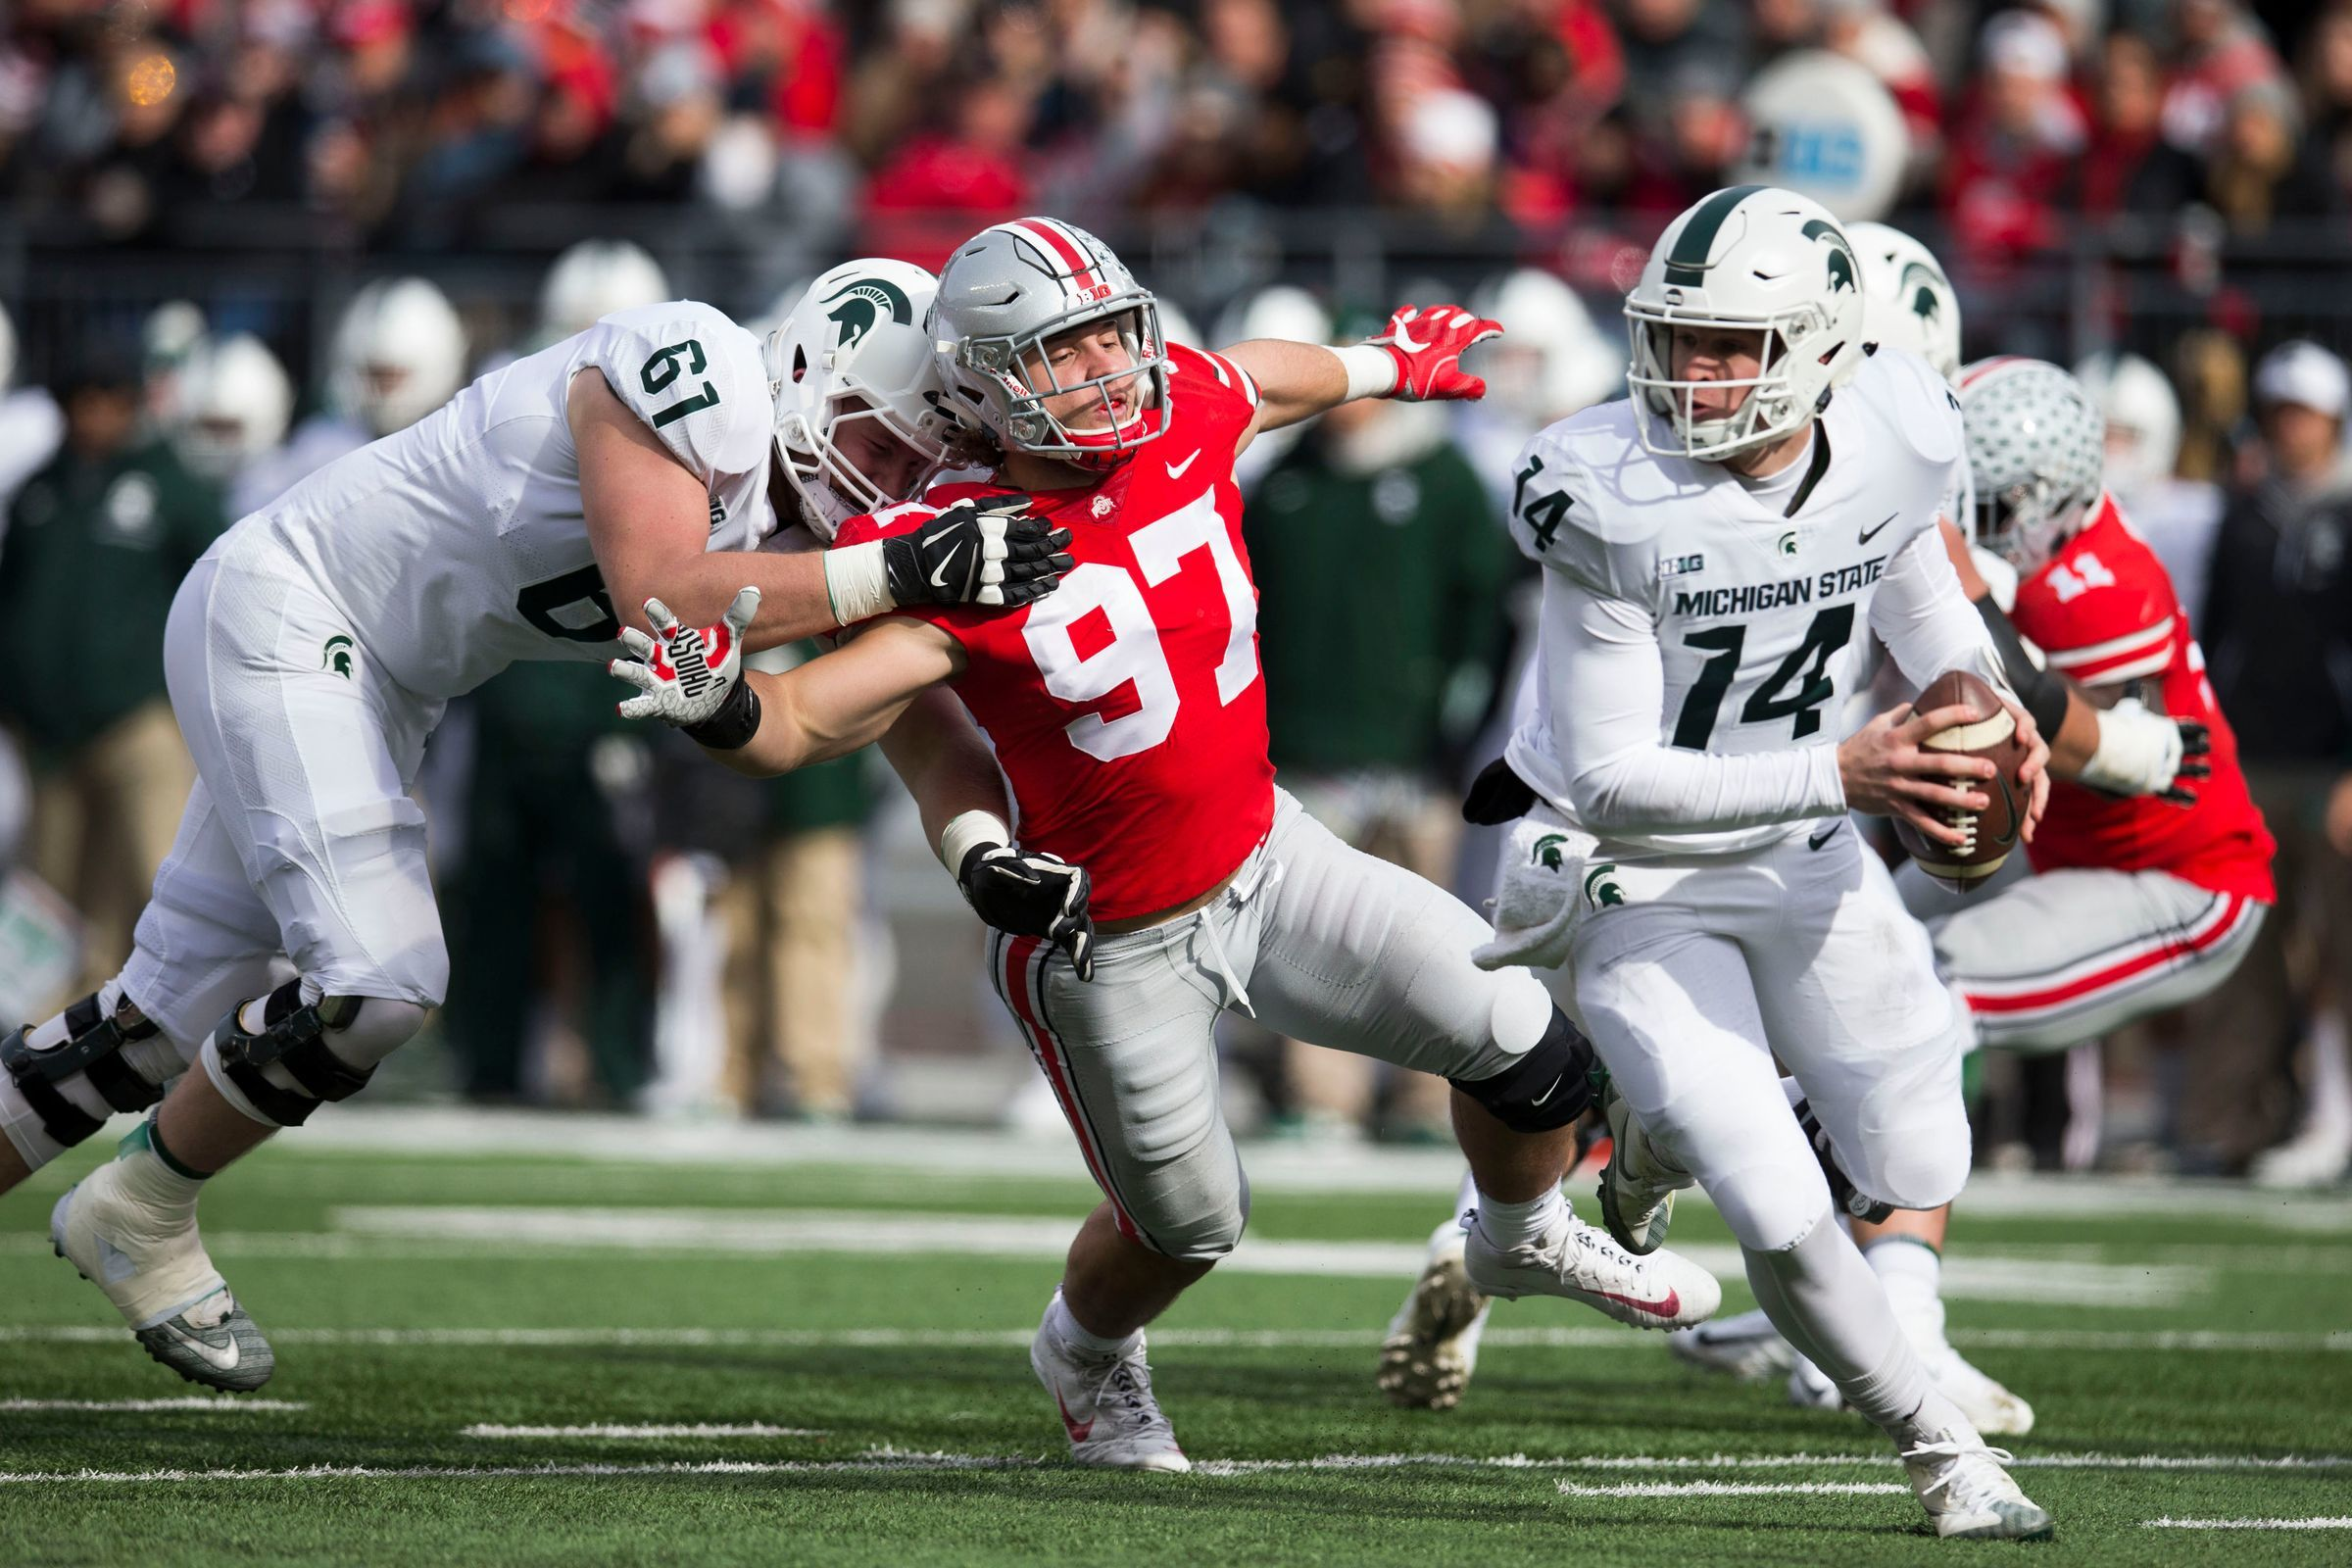 3. Ohio State at Michigan State. When: Nov. 10. Where: East Lansing.  The buzz: Not as heated as the Wolverines and Buckeyes, but this game surely won't disappoint. Who could forget the 2015 game with the Spartans' winning field goal?